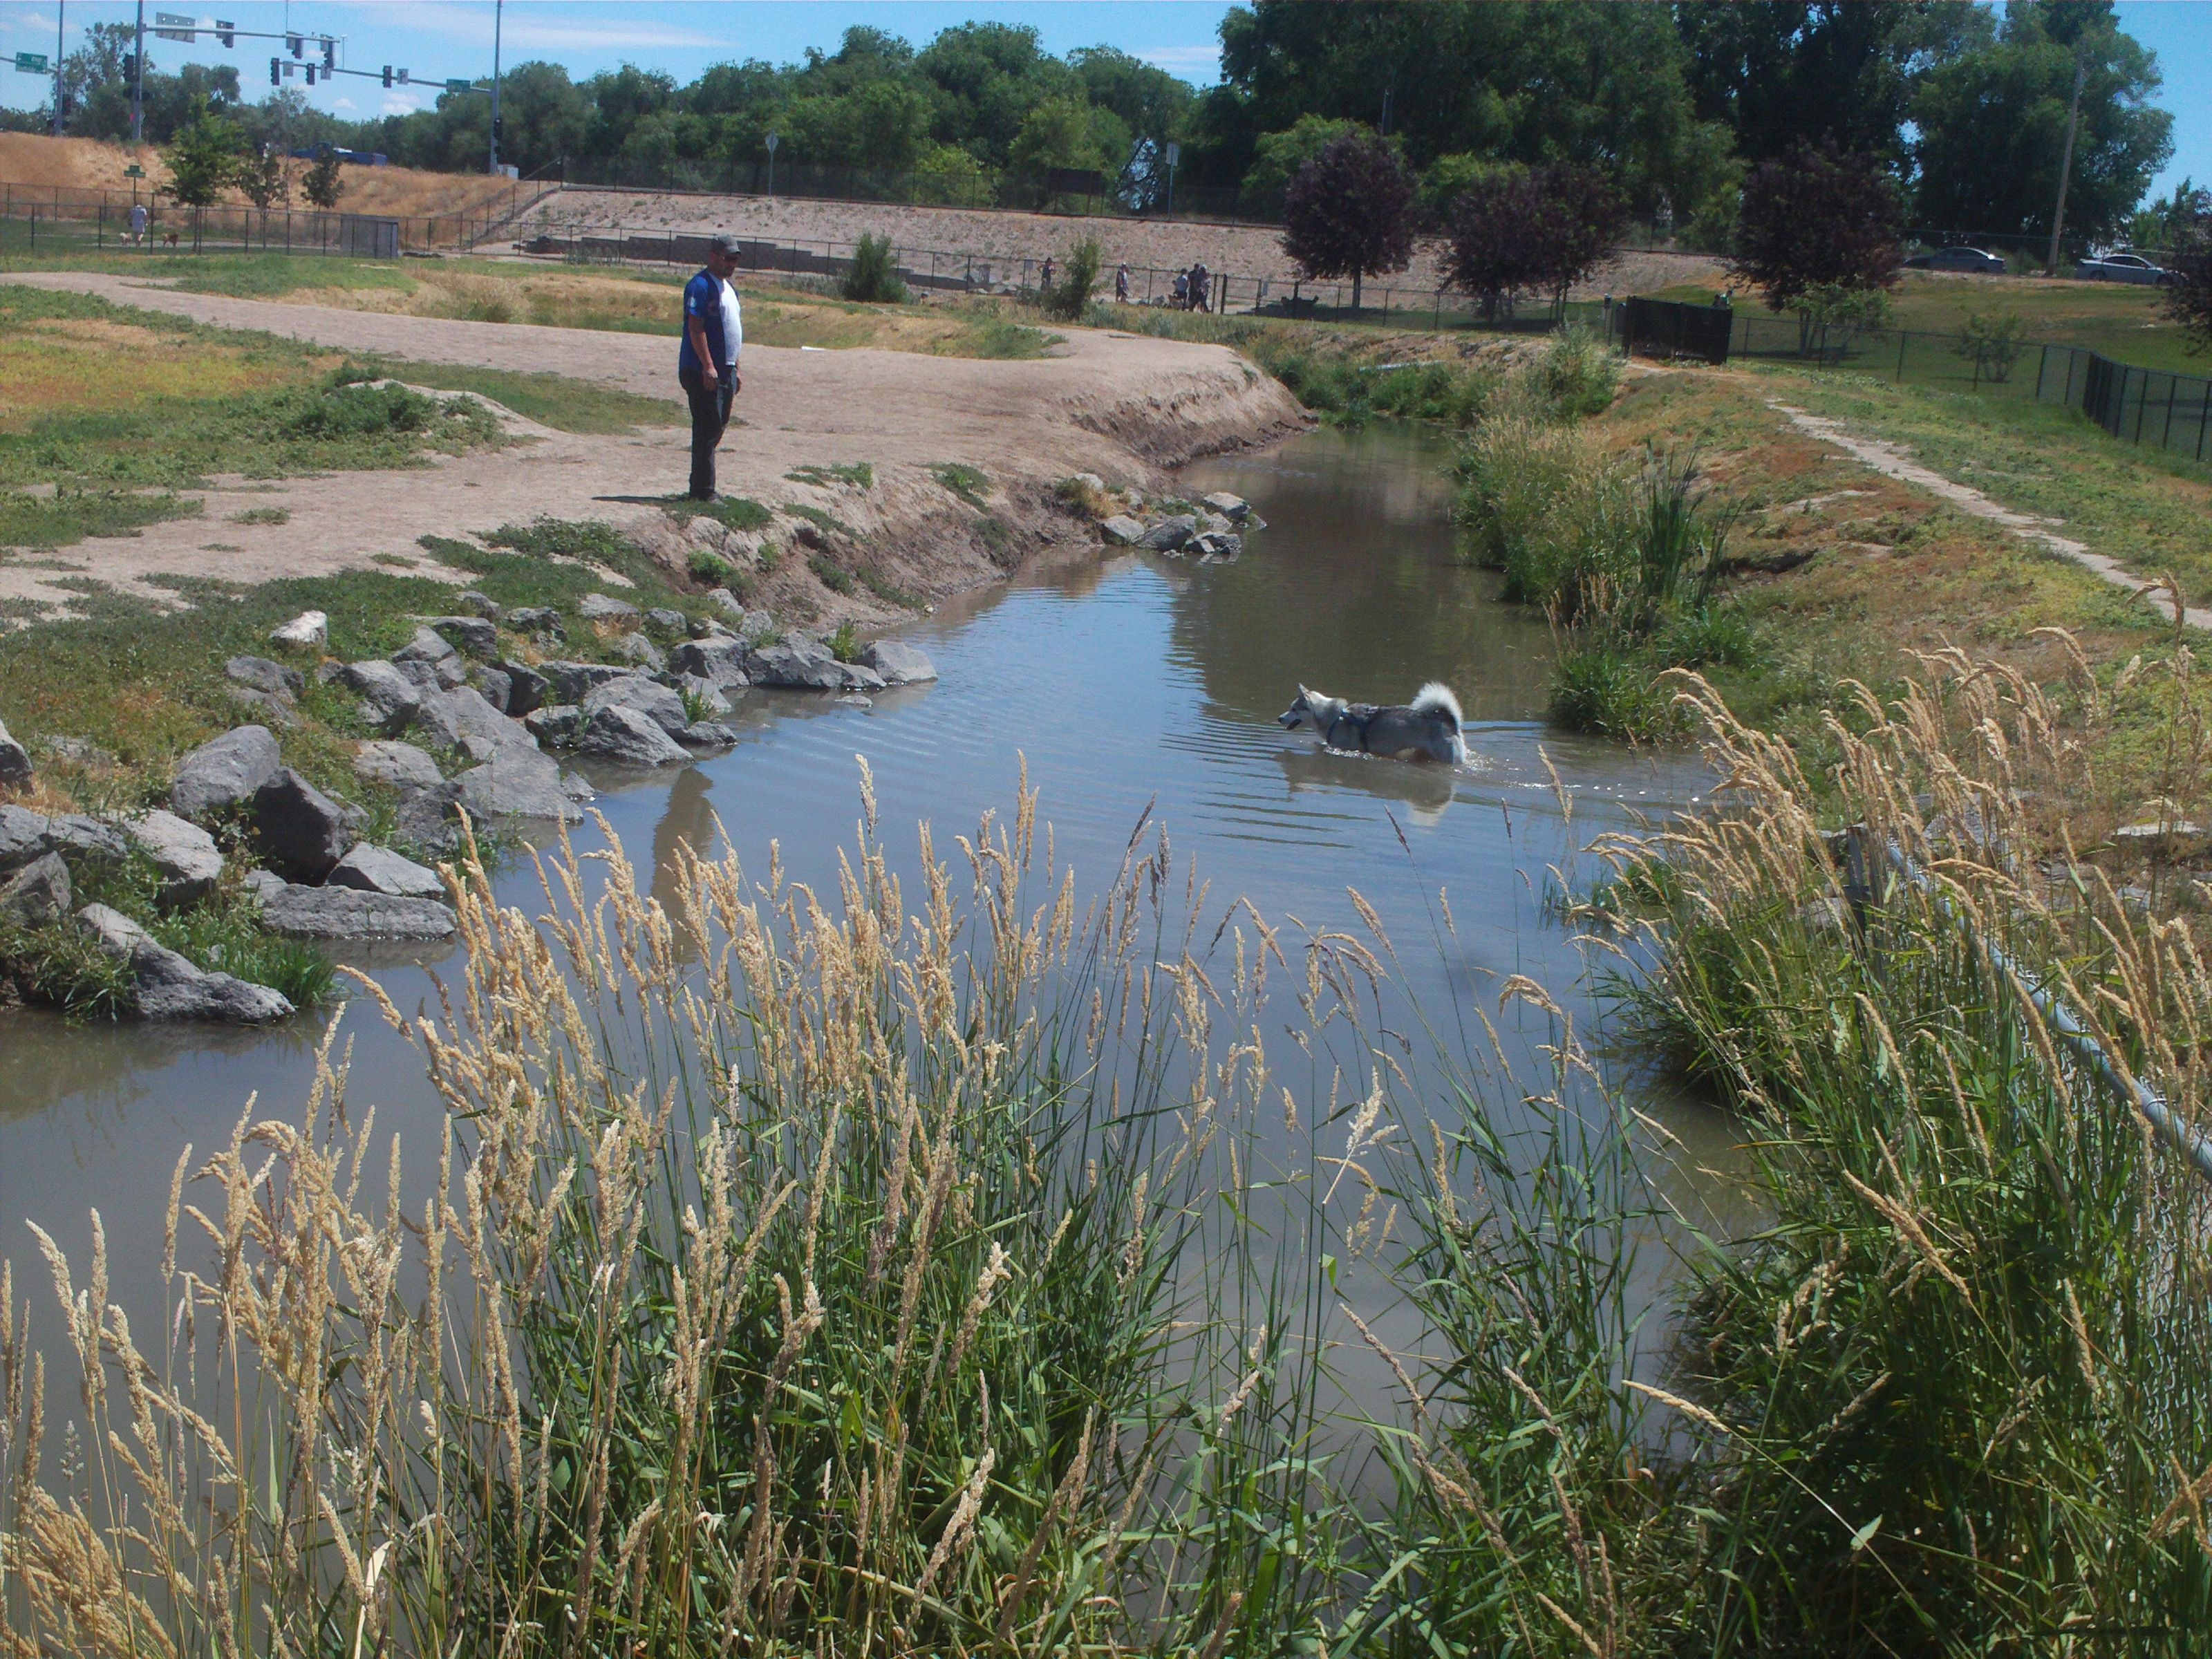 PT JUNE 2014 WATER THING AT THE NAMPA IDAHO DOG PARK. WITH A DOG IN THE WATER.